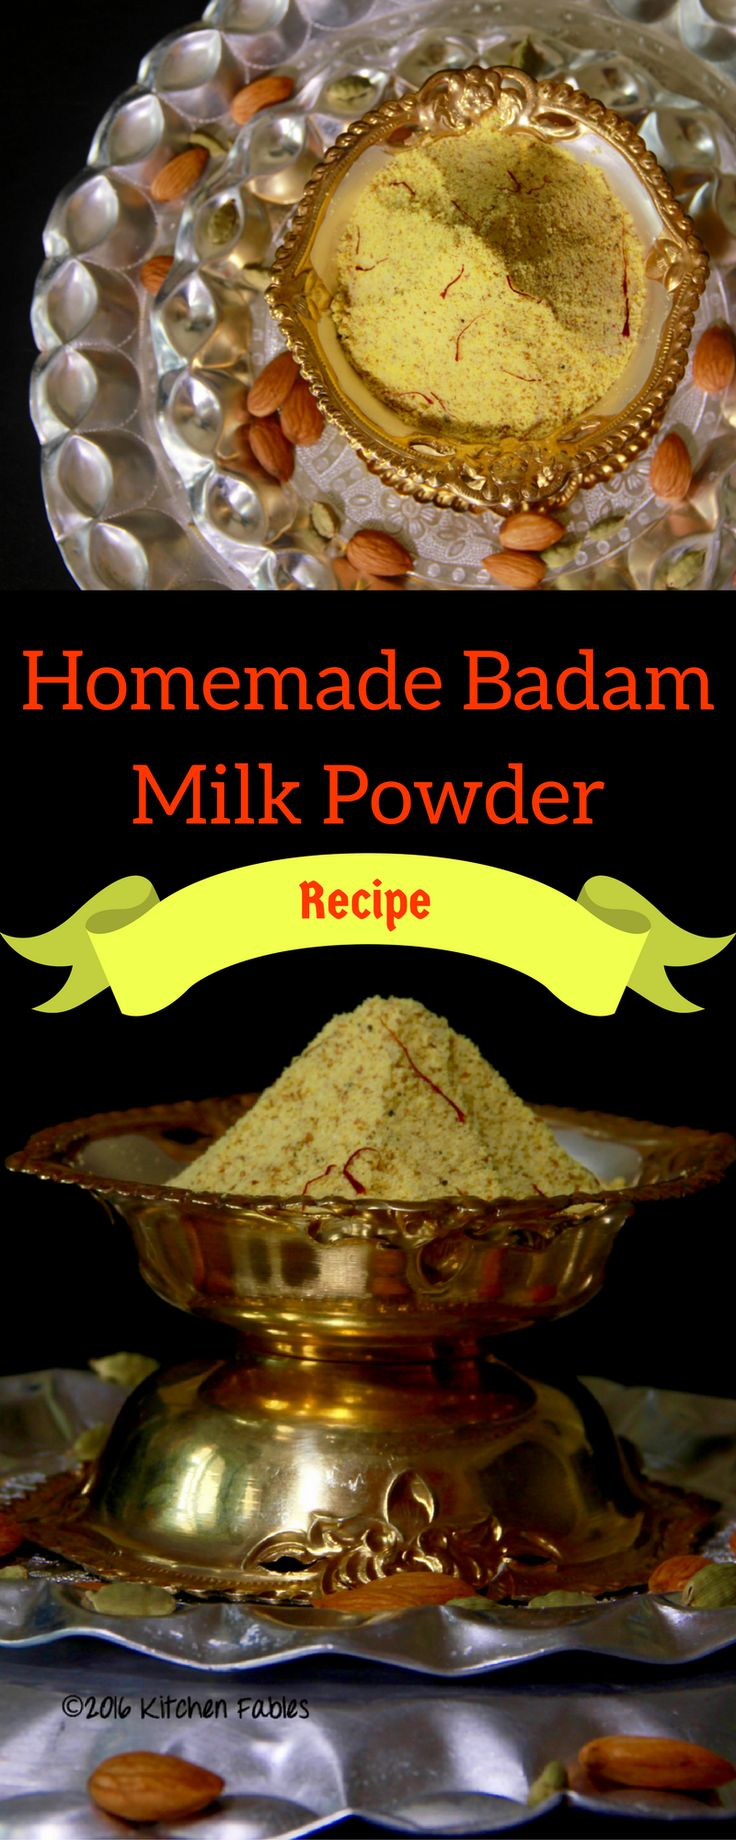 140 best recipes from kitchen fables images on pinterest food badam milk powder almond milk supplement forumfinder Image collections